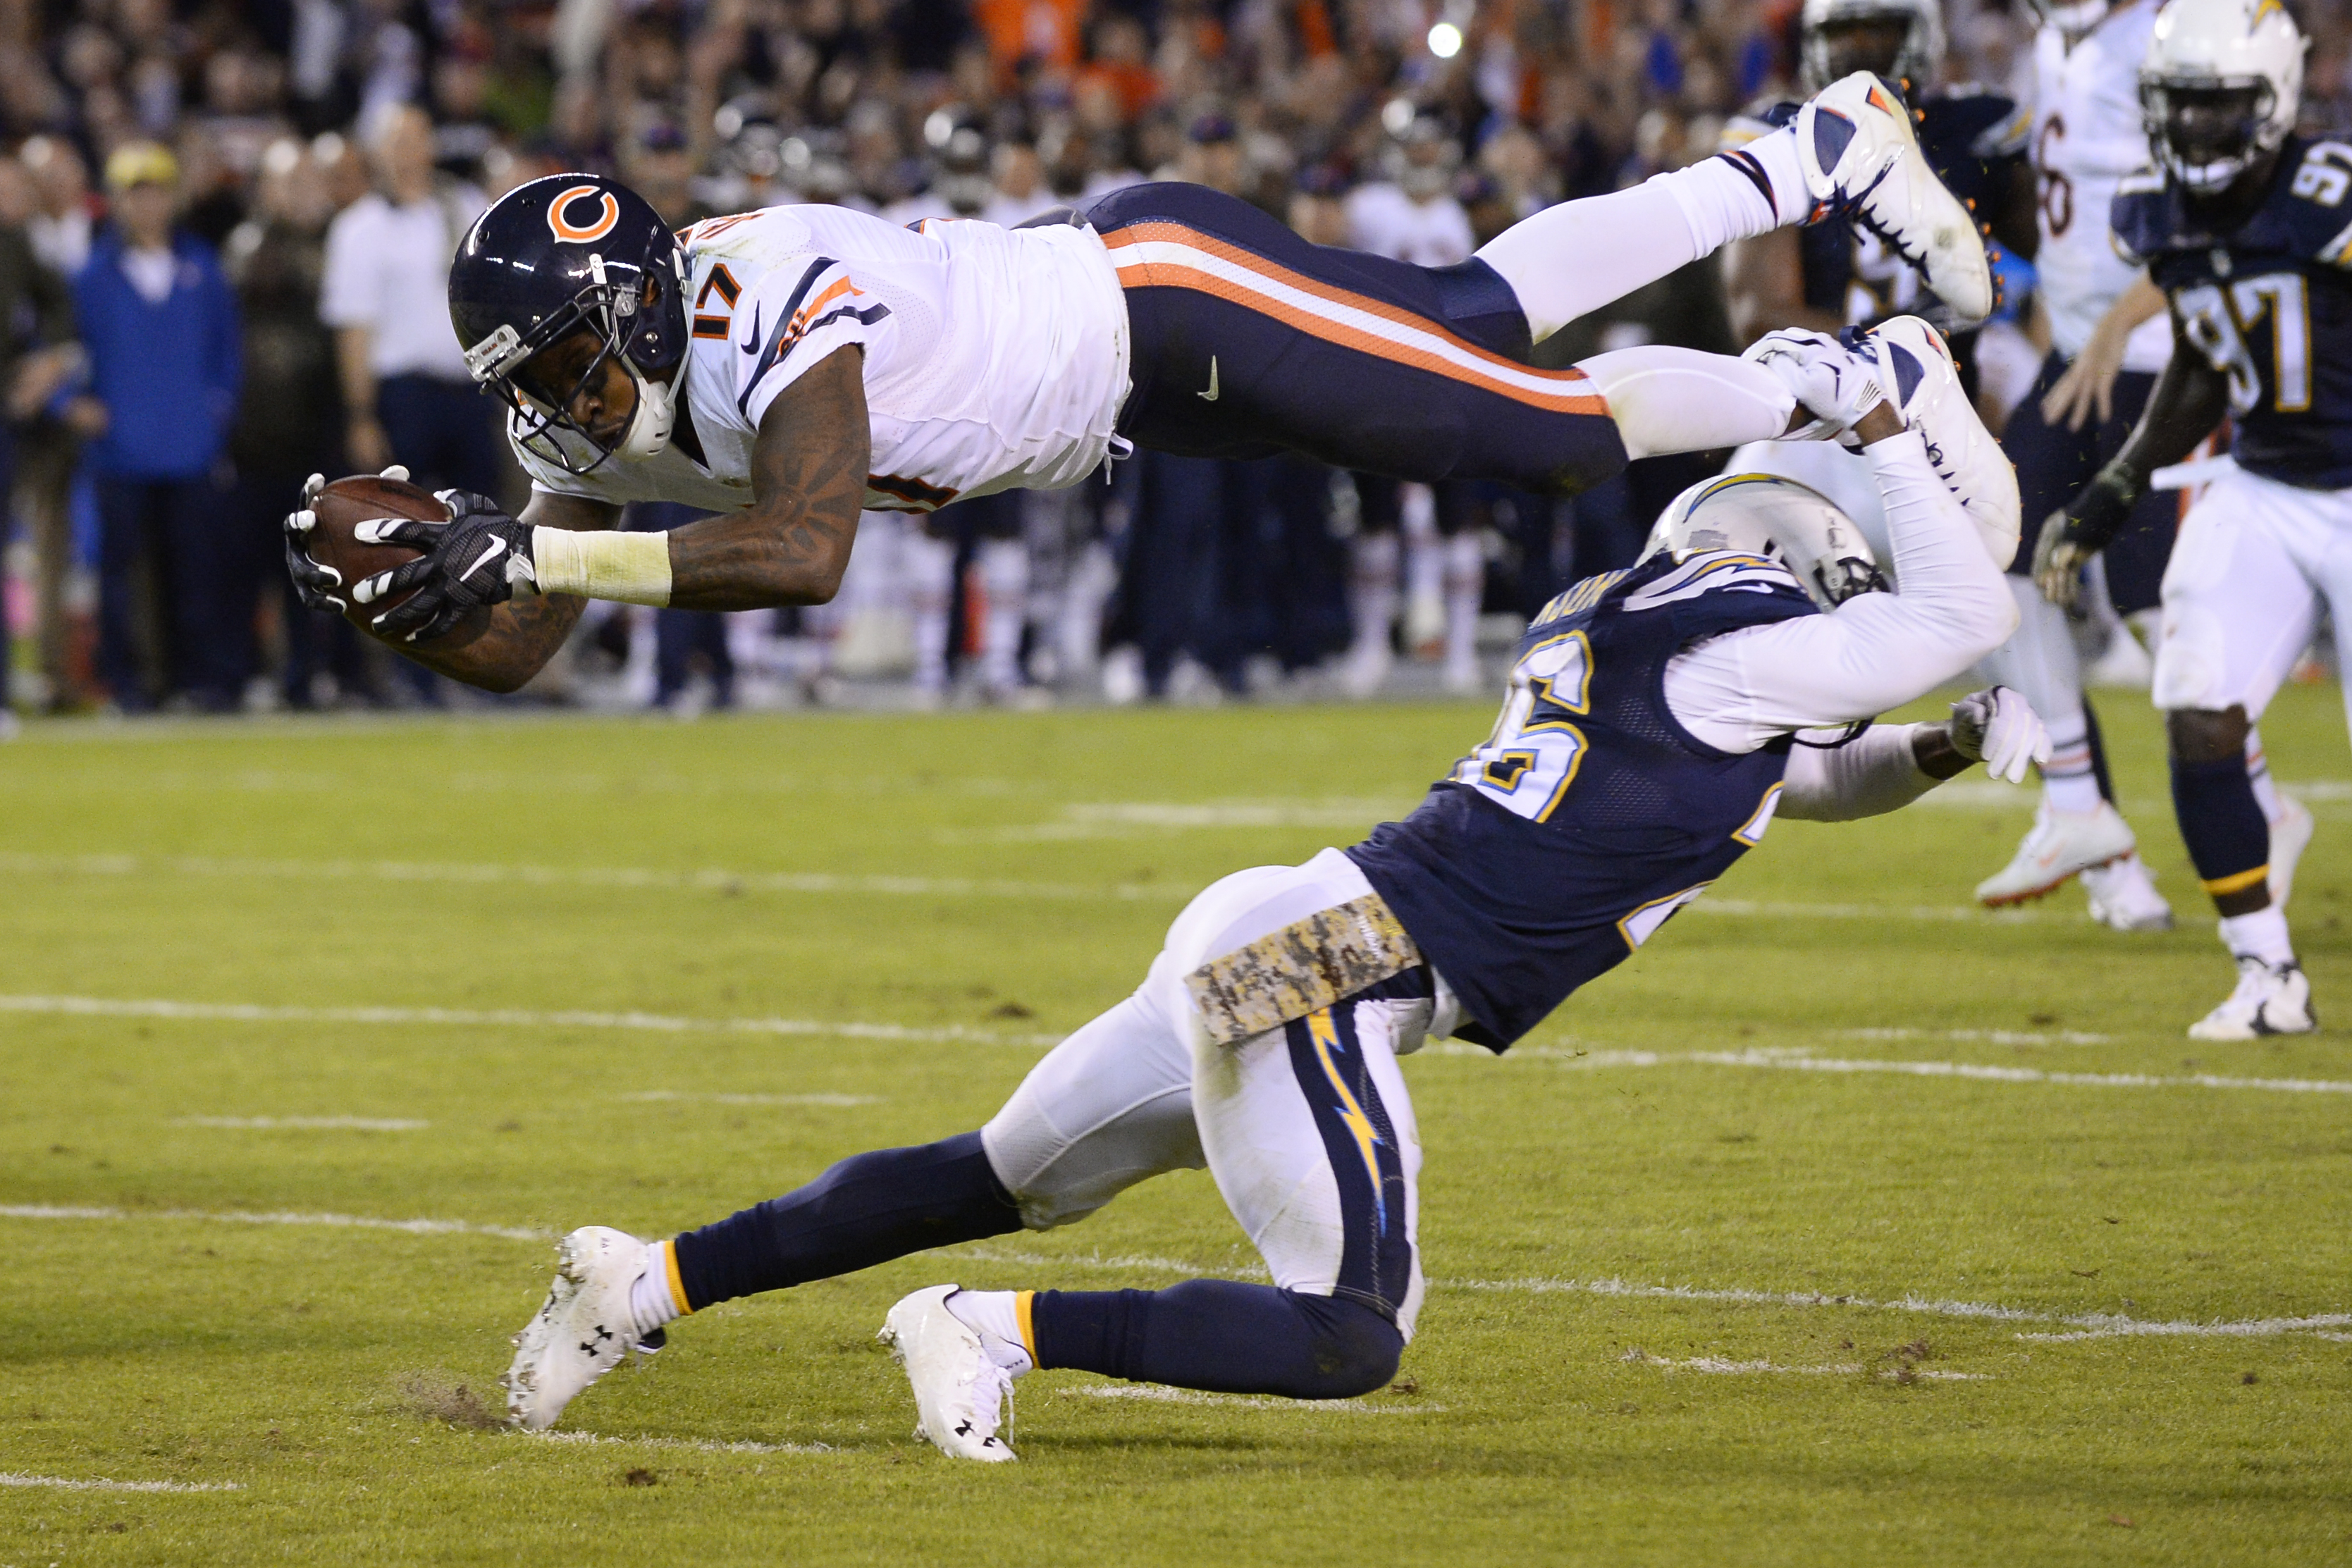 Chicago Bears wide receiver Alshon Jeffery, above, is stopped near the goal line by San Diego Chargers cornerback Patrick Robinson, below, during the first half of an NFL football game Monday, Nov. 9, 2015, in San Diego. (AP Photo/Denis Poroy)